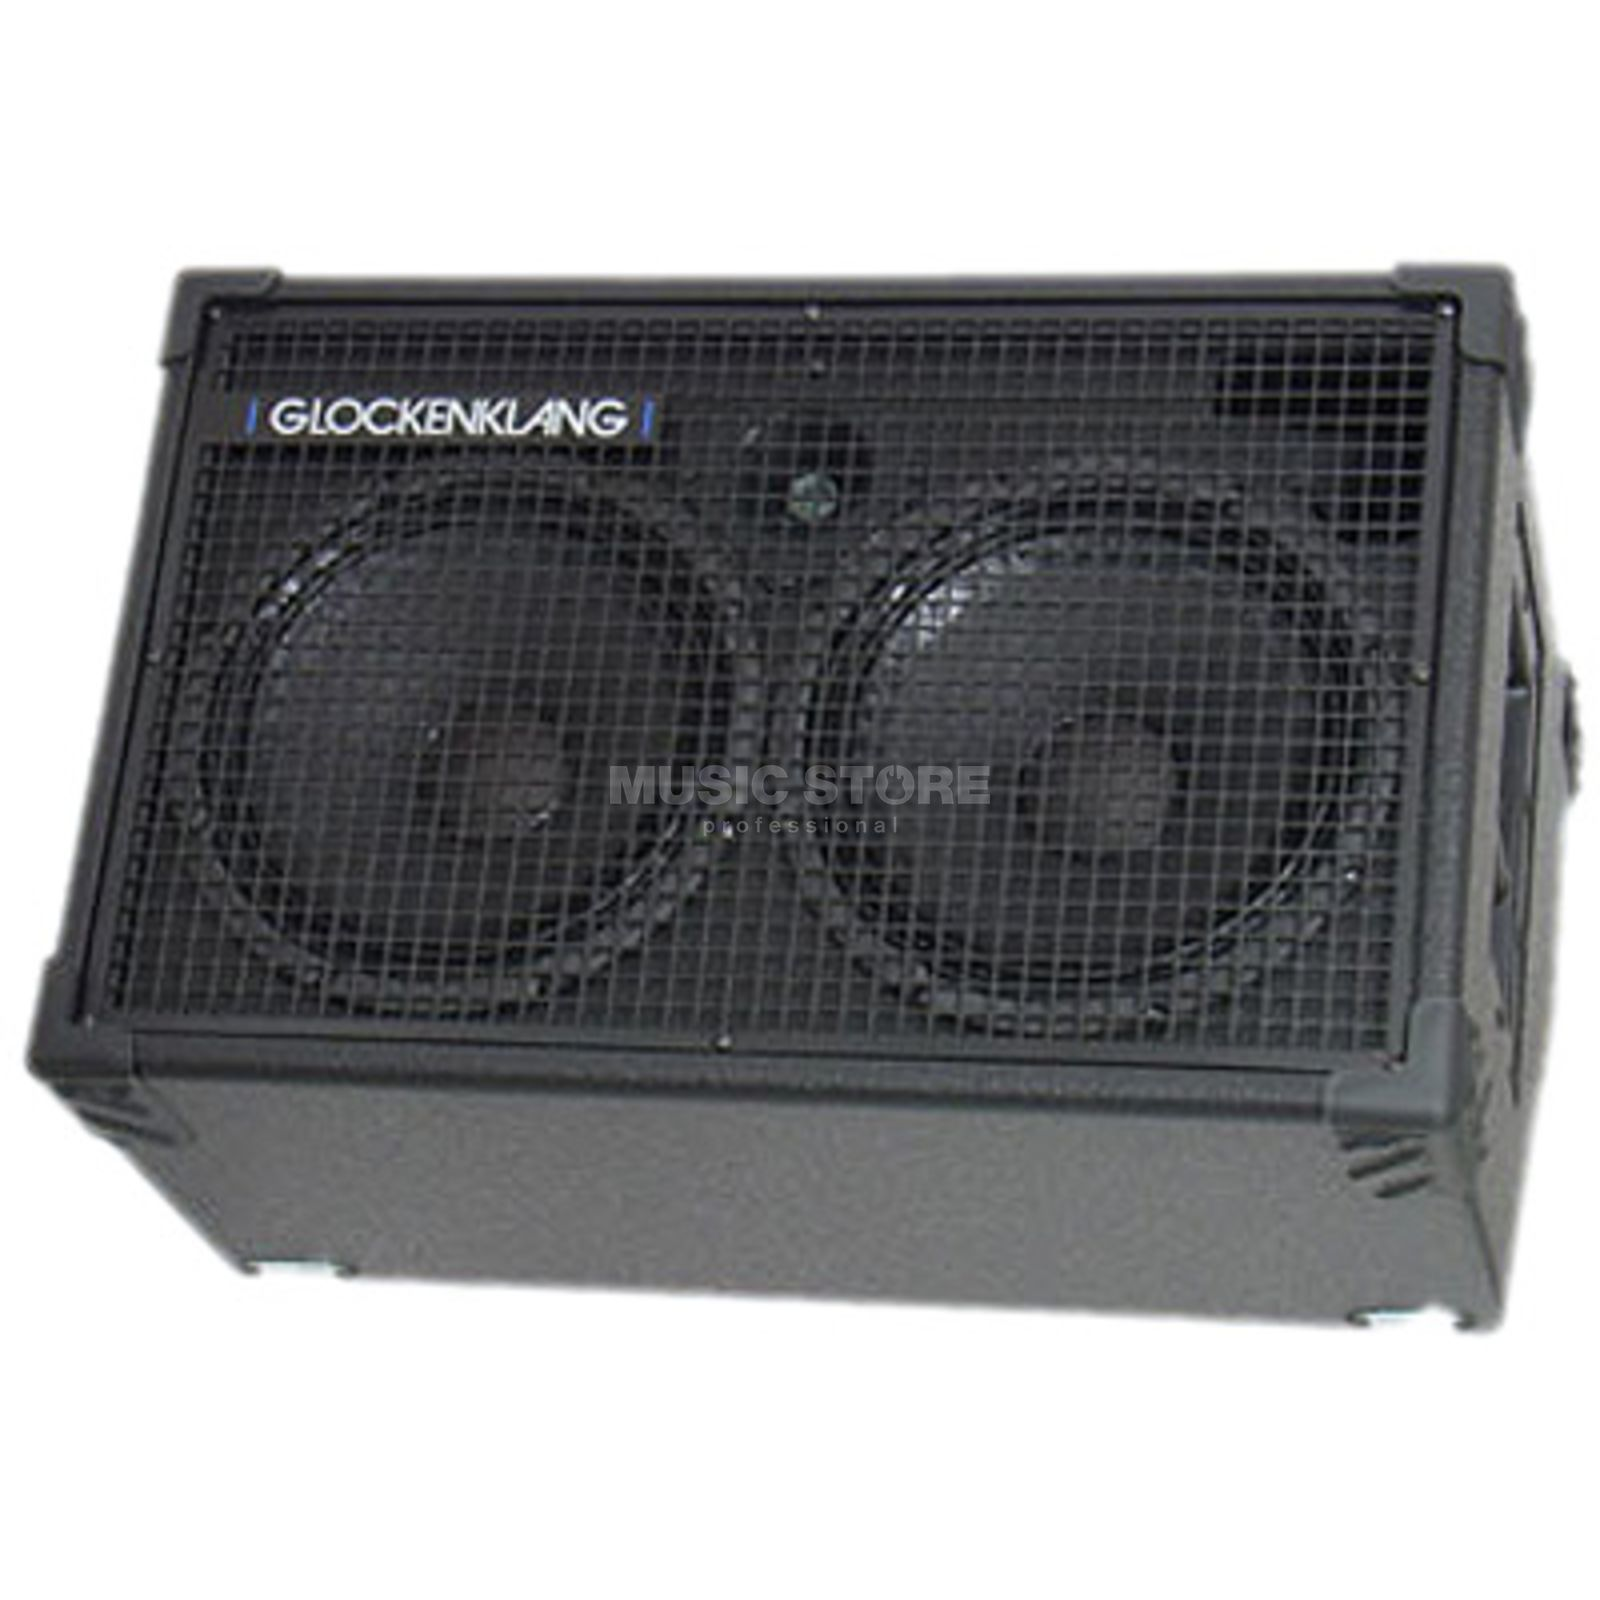 "Glockenklang Duo Wedge Box 8 Ohm 400 Watt 2x10"" Speaker +Horn Immagine prodotto"